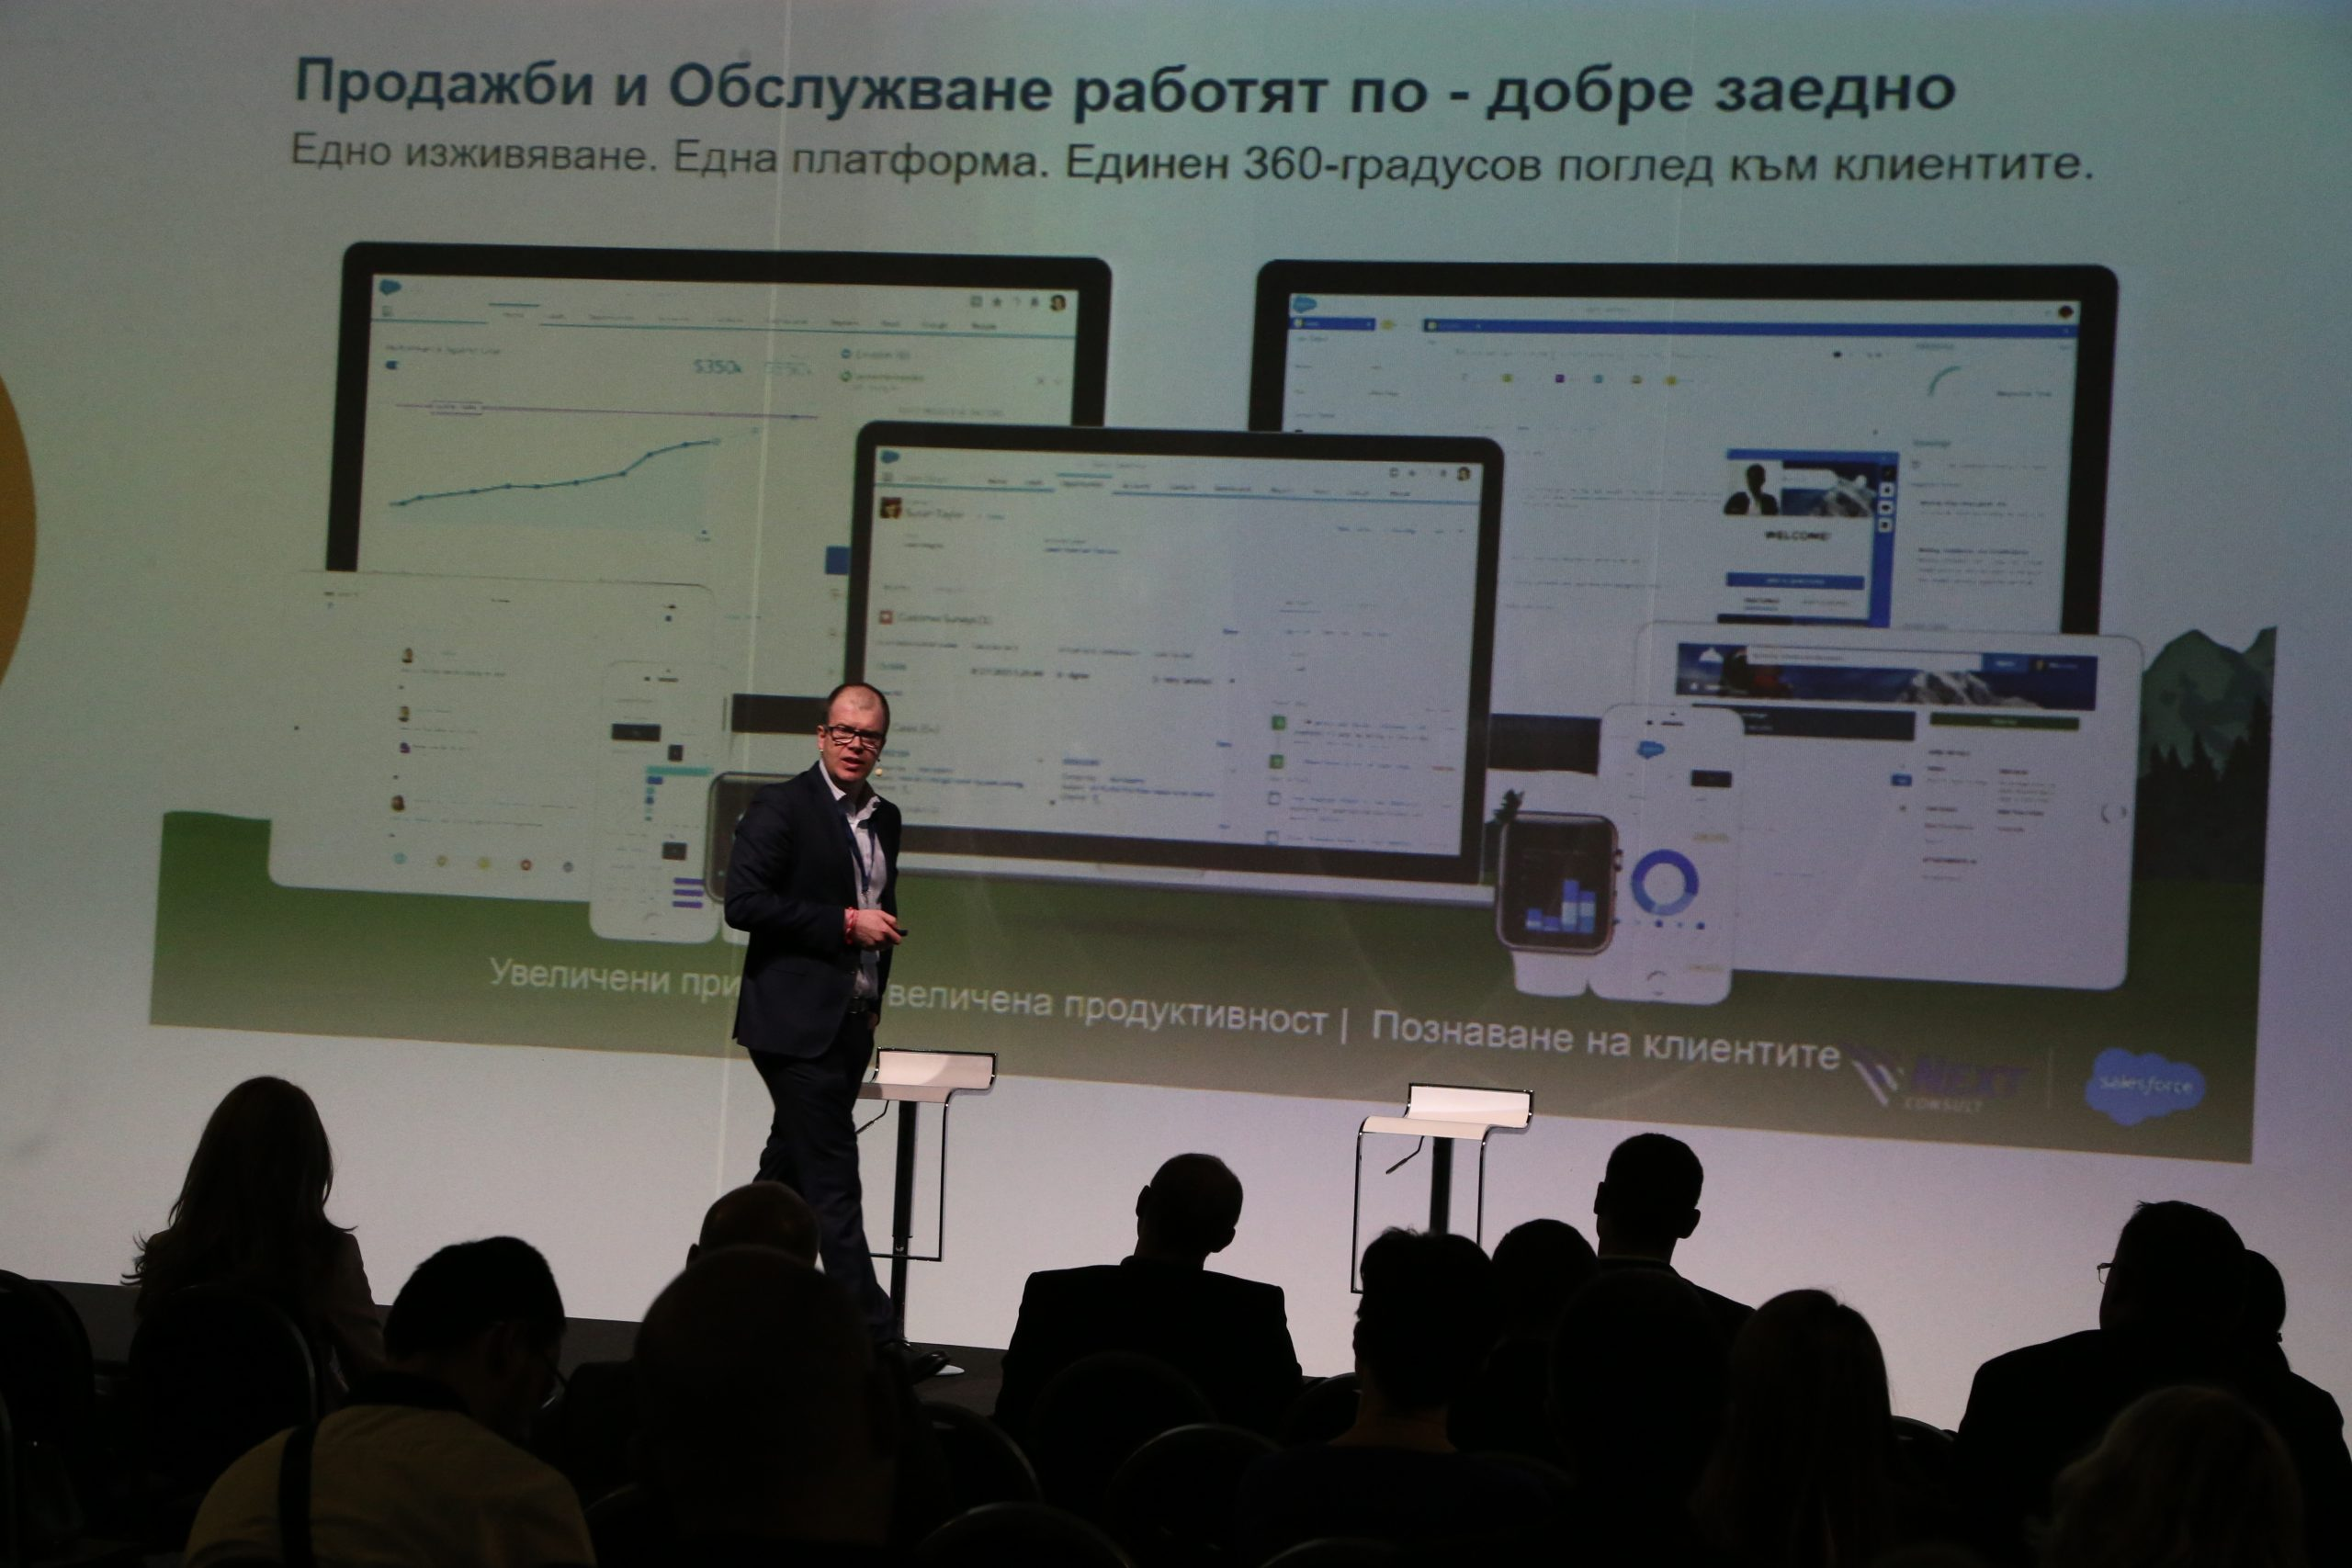 The fifth Salesforce CRM conference